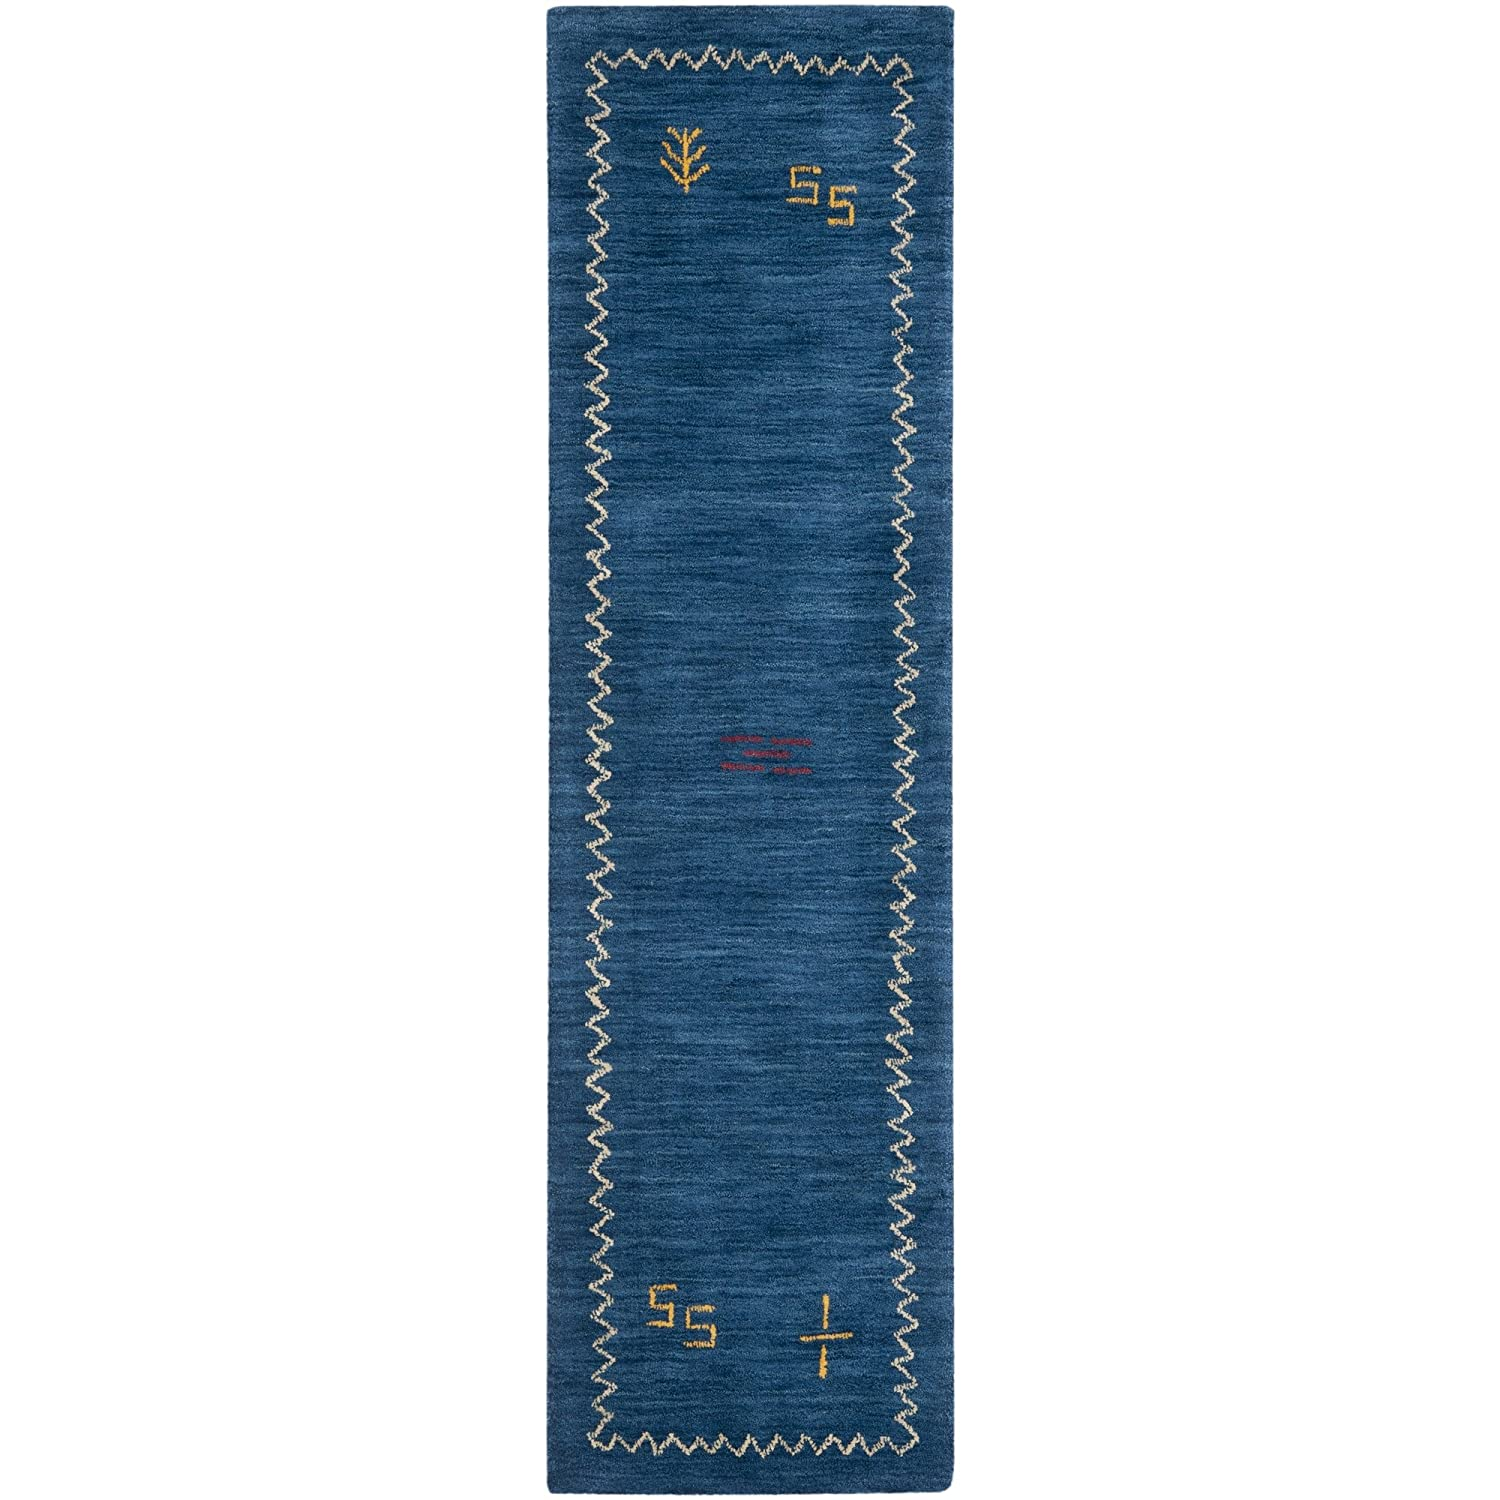 Safavieh Himalaya Collection HIM583A Handmade Blue Wool Runner, 2 feet 3 inches by 6 feet (2'3 x 6') HIM583A-26